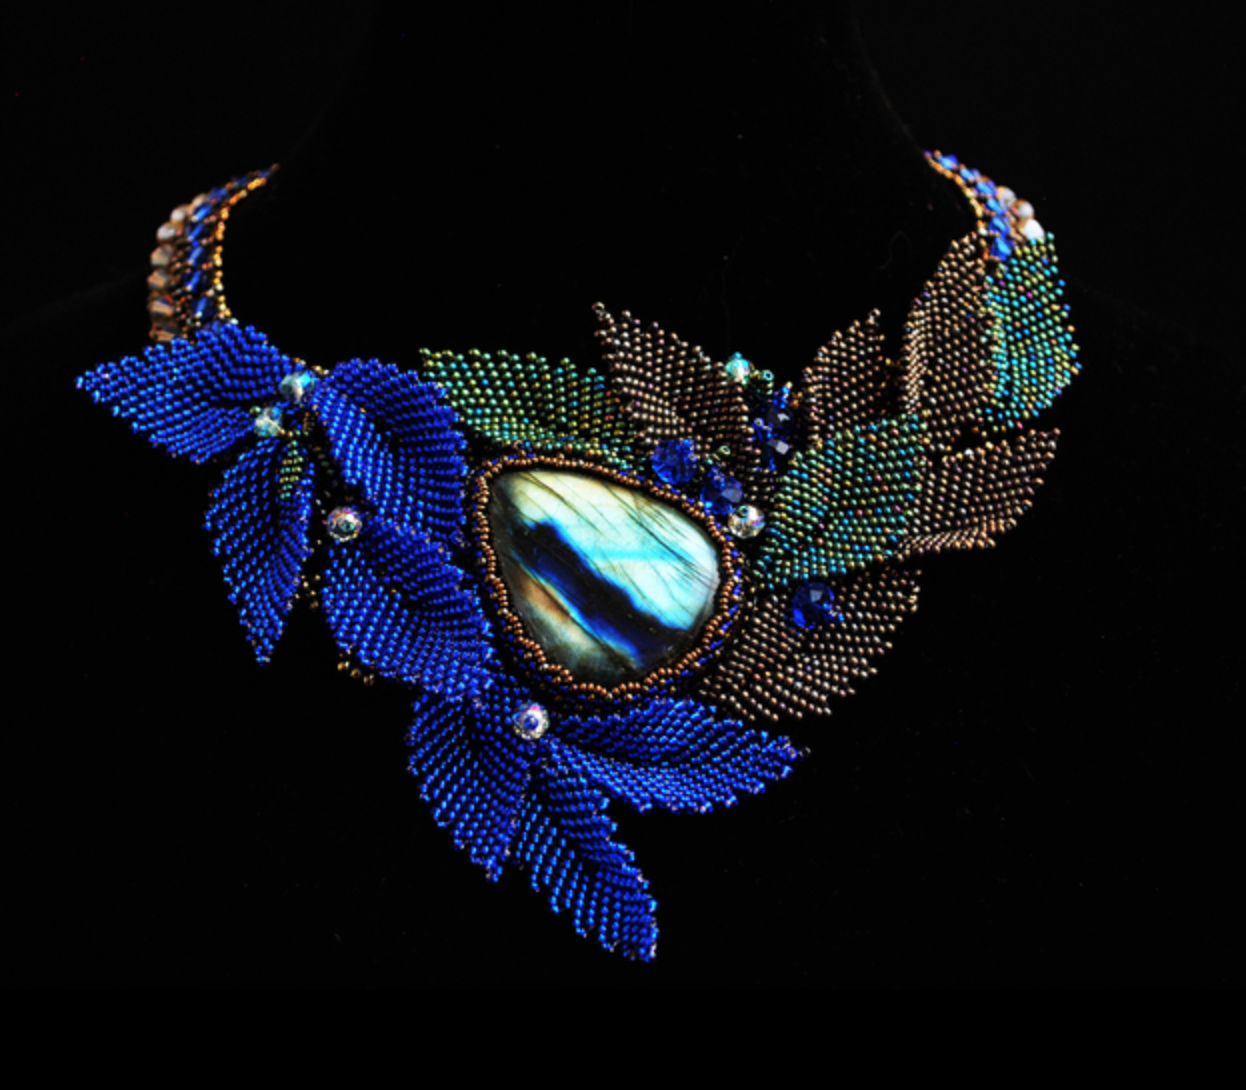 Lisa Davin - http://www.designsbylisajewelry.comI create one of a kind pieces of wearable art jewelry. I seed bead, knot, wire, weave and crochet. I use semiprecious stones, pearls, silver, crystal and seed beads.